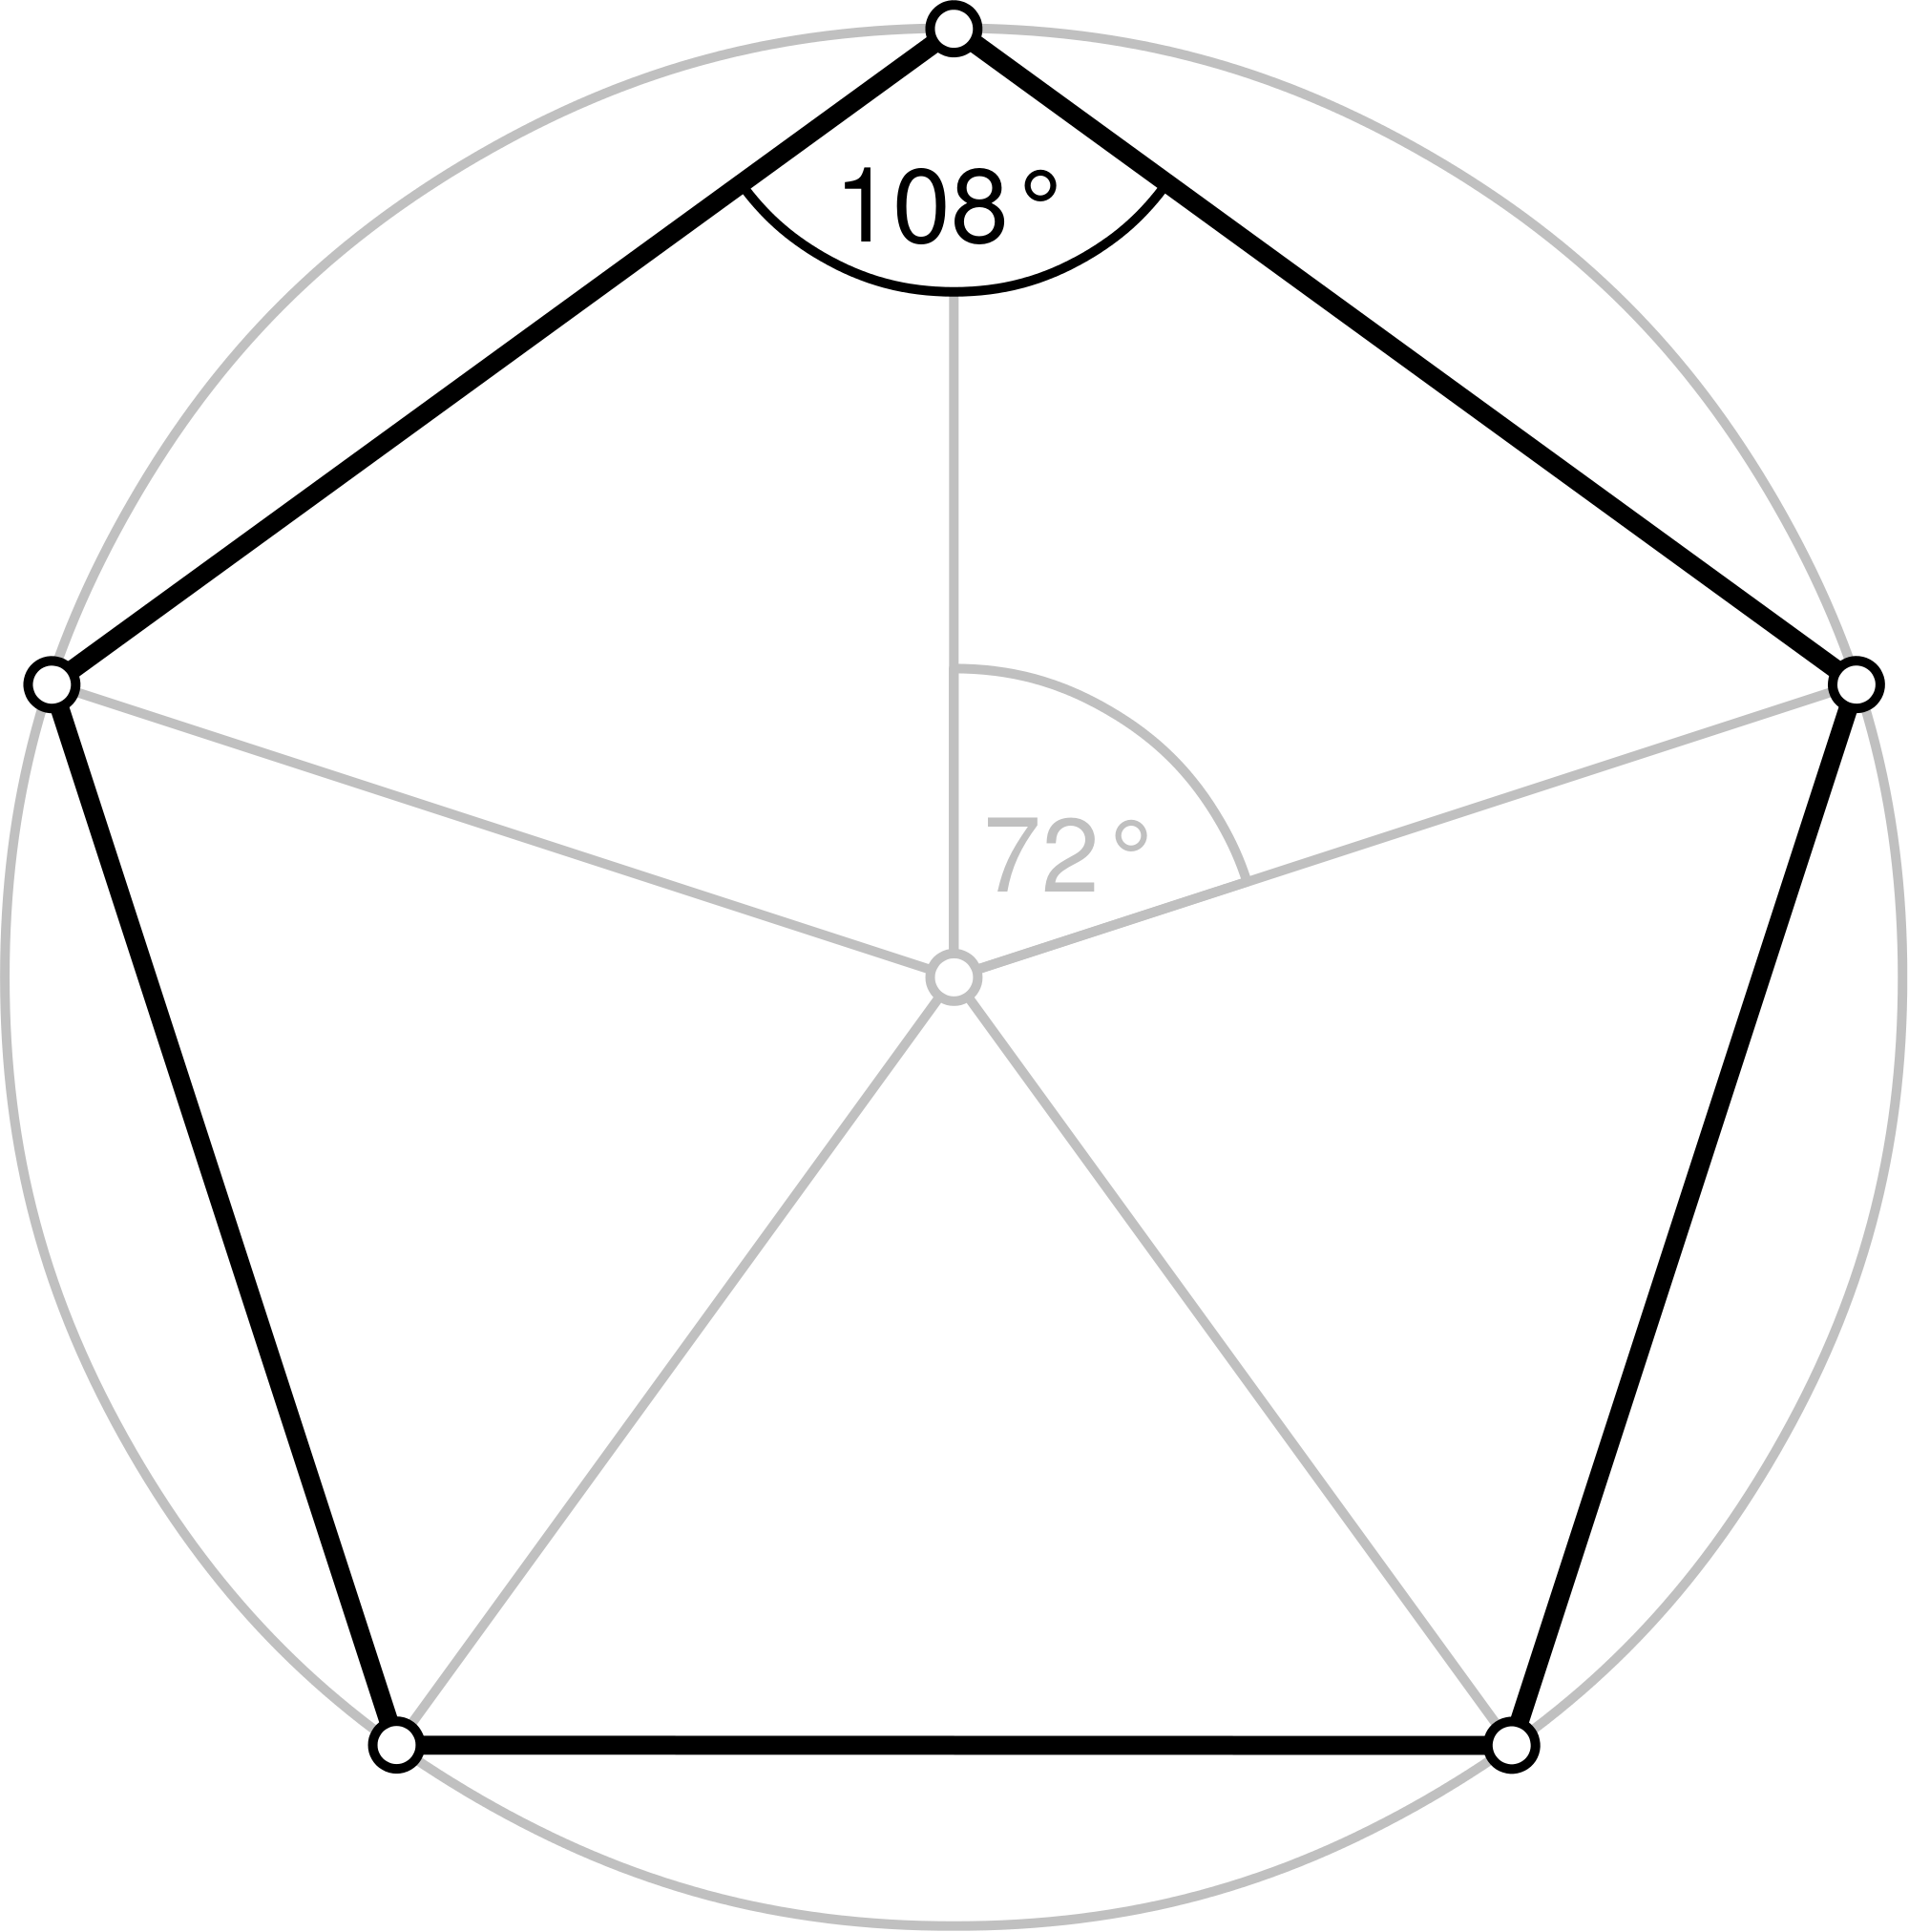 Pentagram with degree segments. Hexagon clipart equilateral